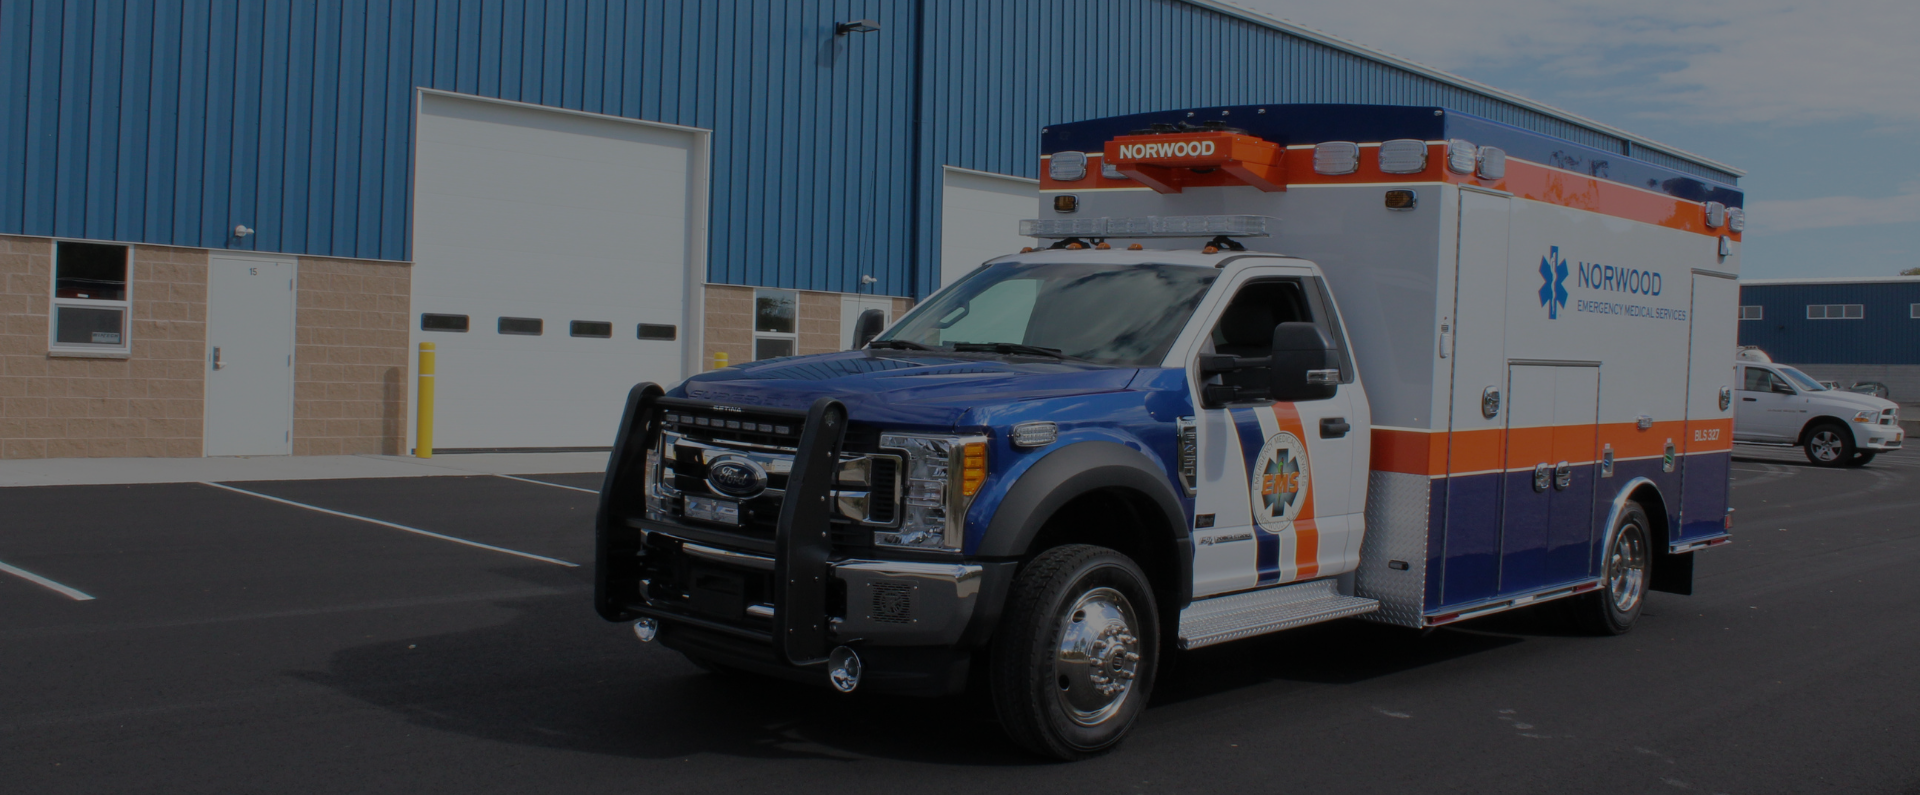 Braun Ambulances First Priority Emergency Vehicles